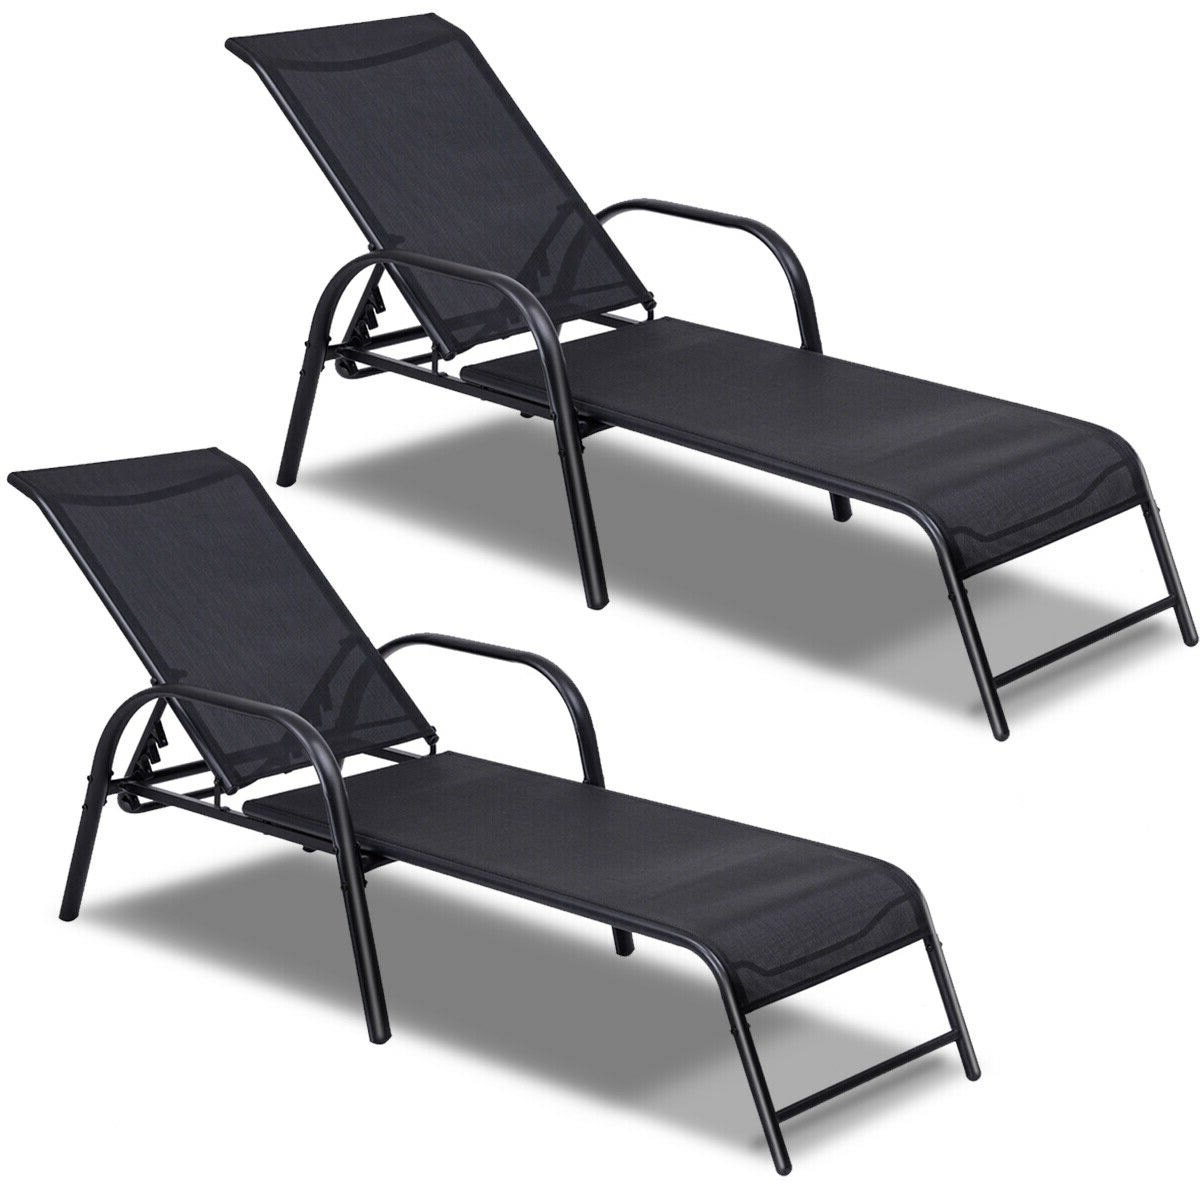 Preferred Costway Set Of 2 Patio Lounge Chairs Sling Chaise Lounges Recliner Adjustable Back Regarding Multi Position Iron Chaise Lounges (Gallery 23 of 25)